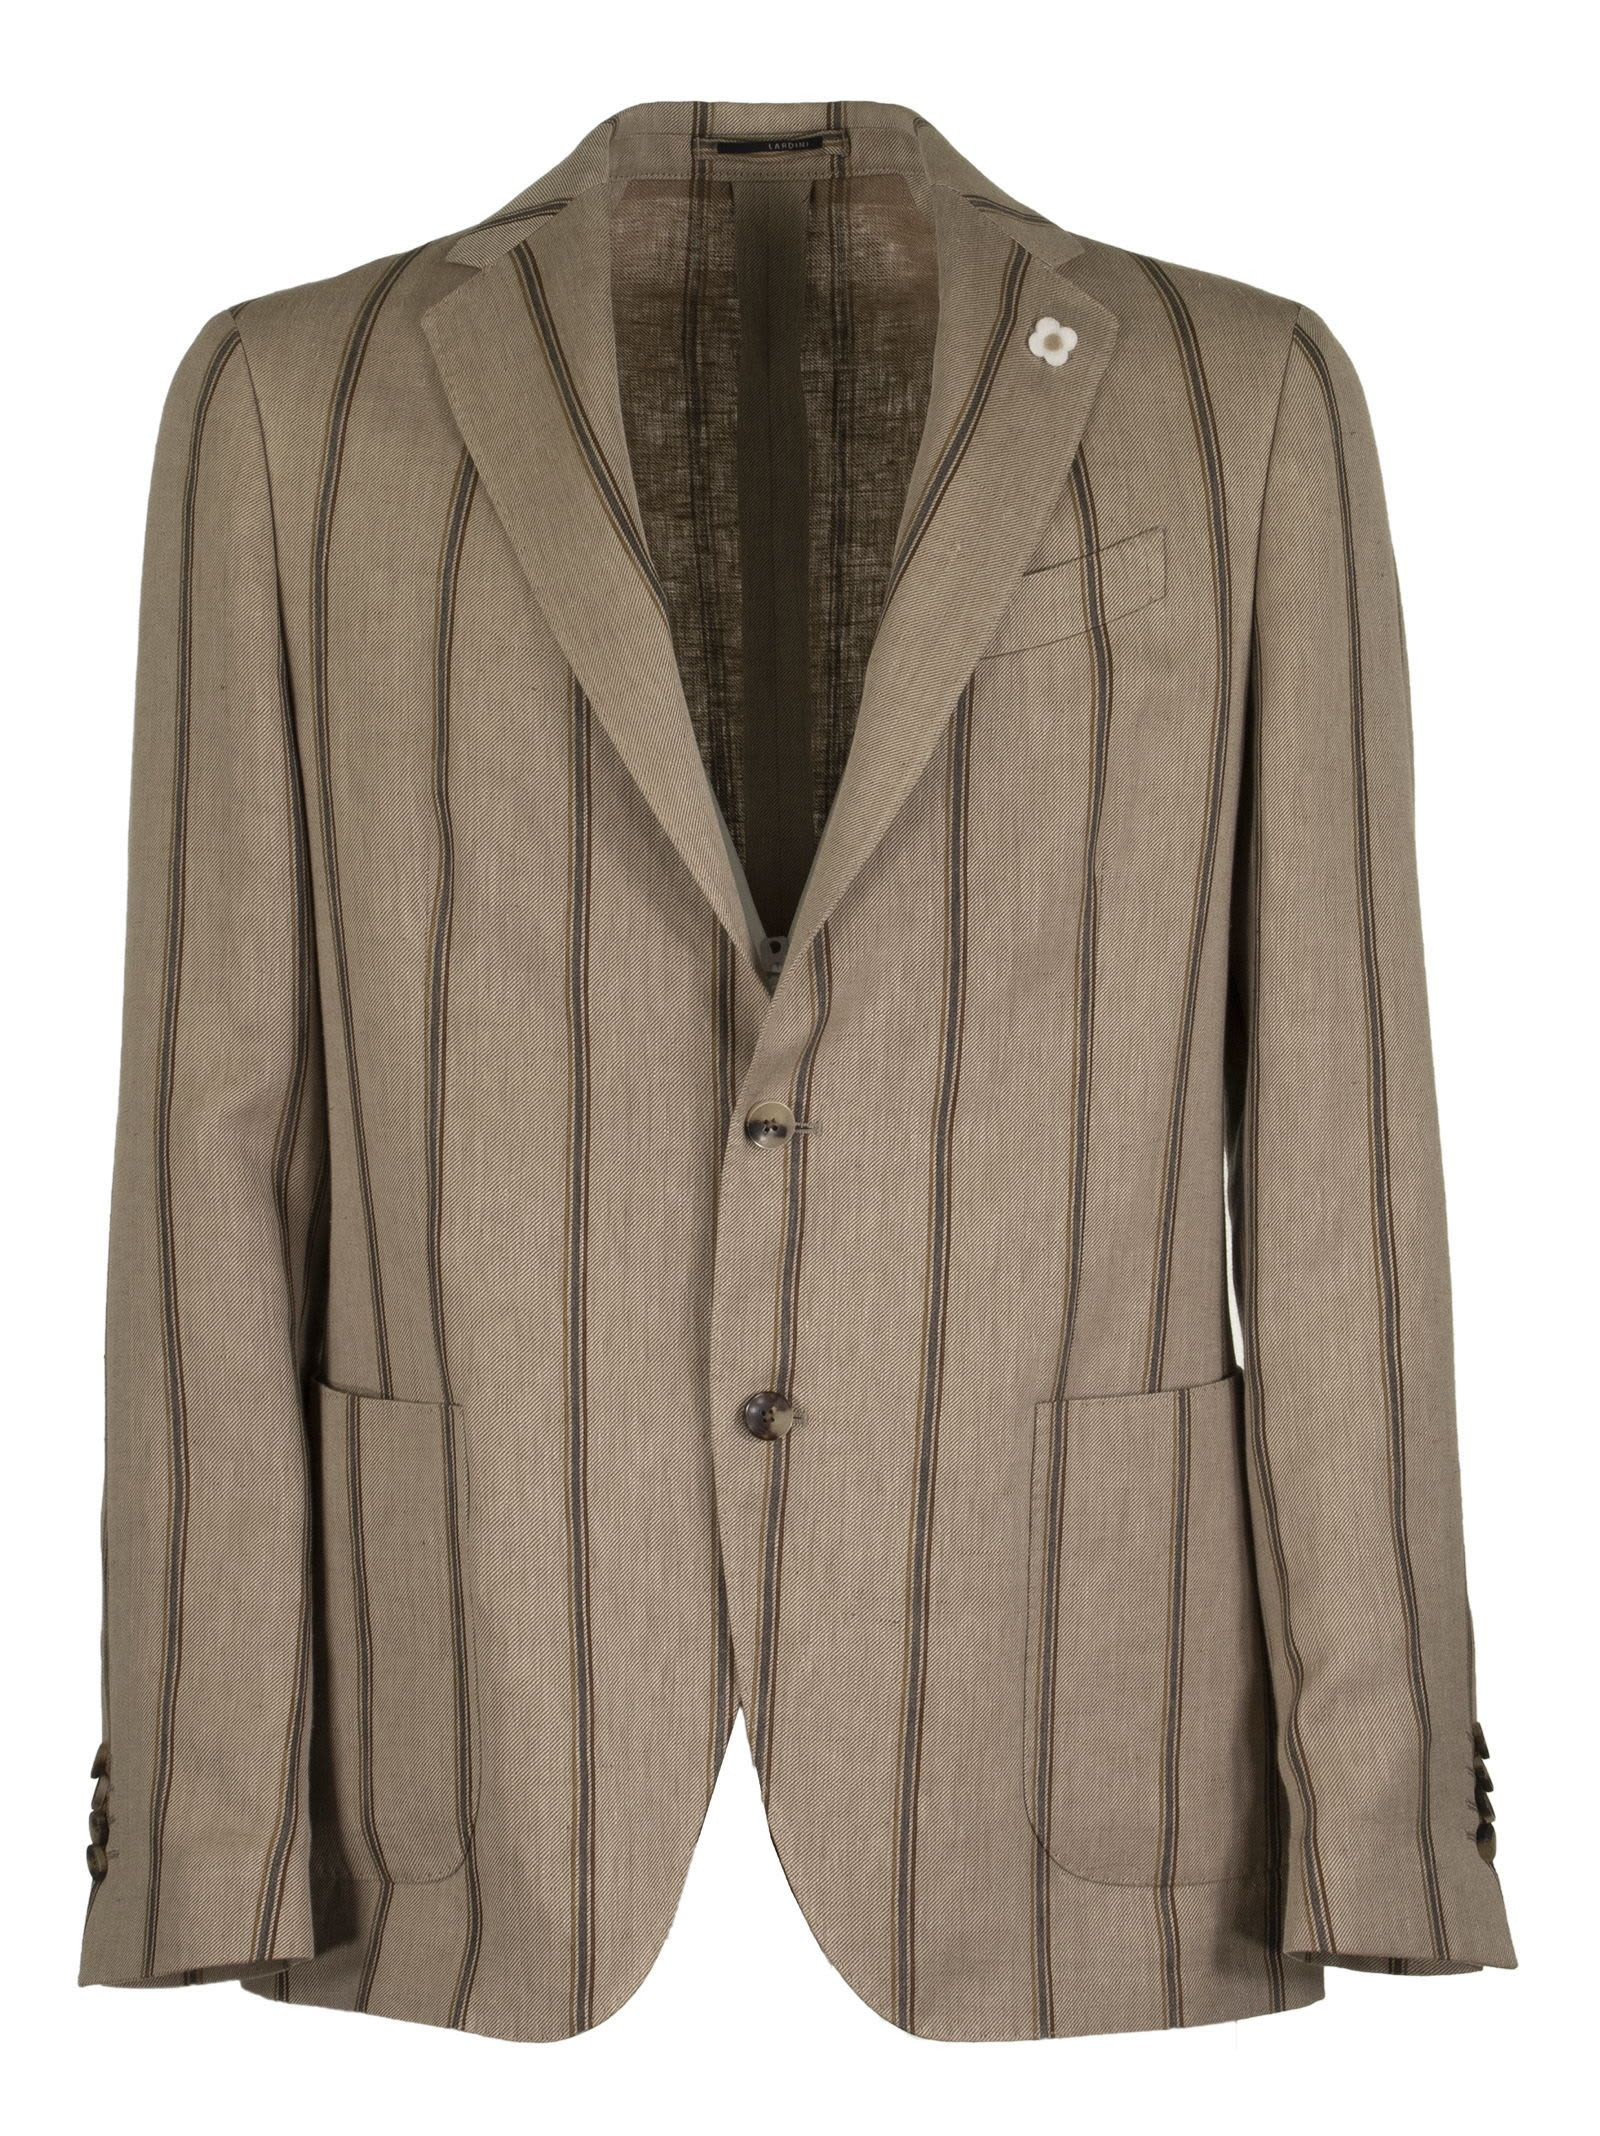 Lardini Pinstripe Pattern Two-button Single-breasted Jacket